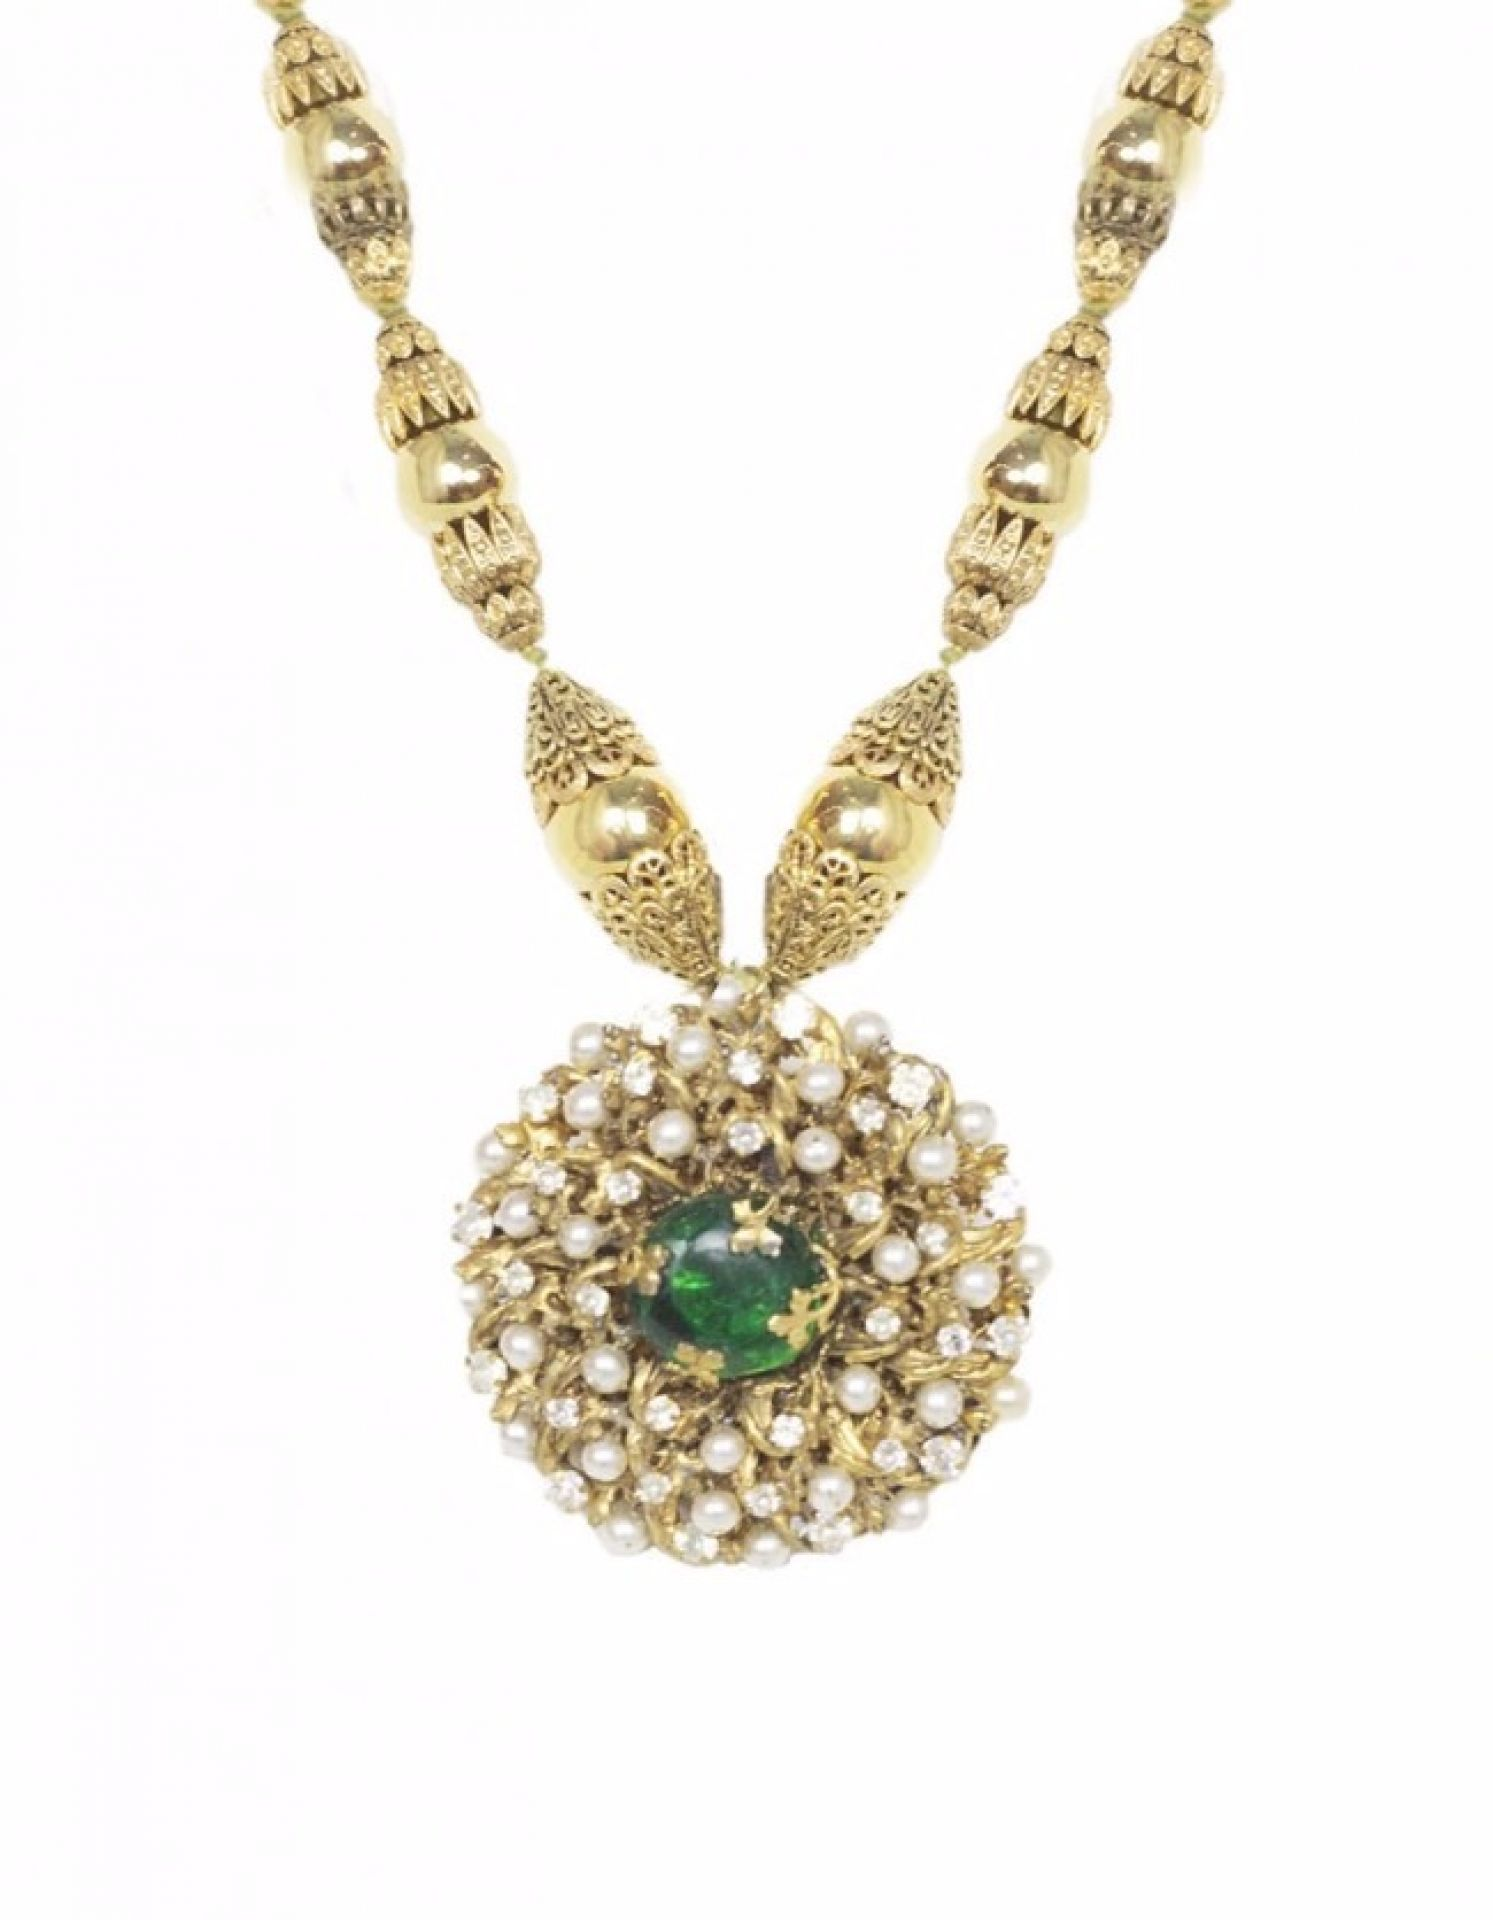 Chanel 3 Star Couture Pearl And Stone Necklace